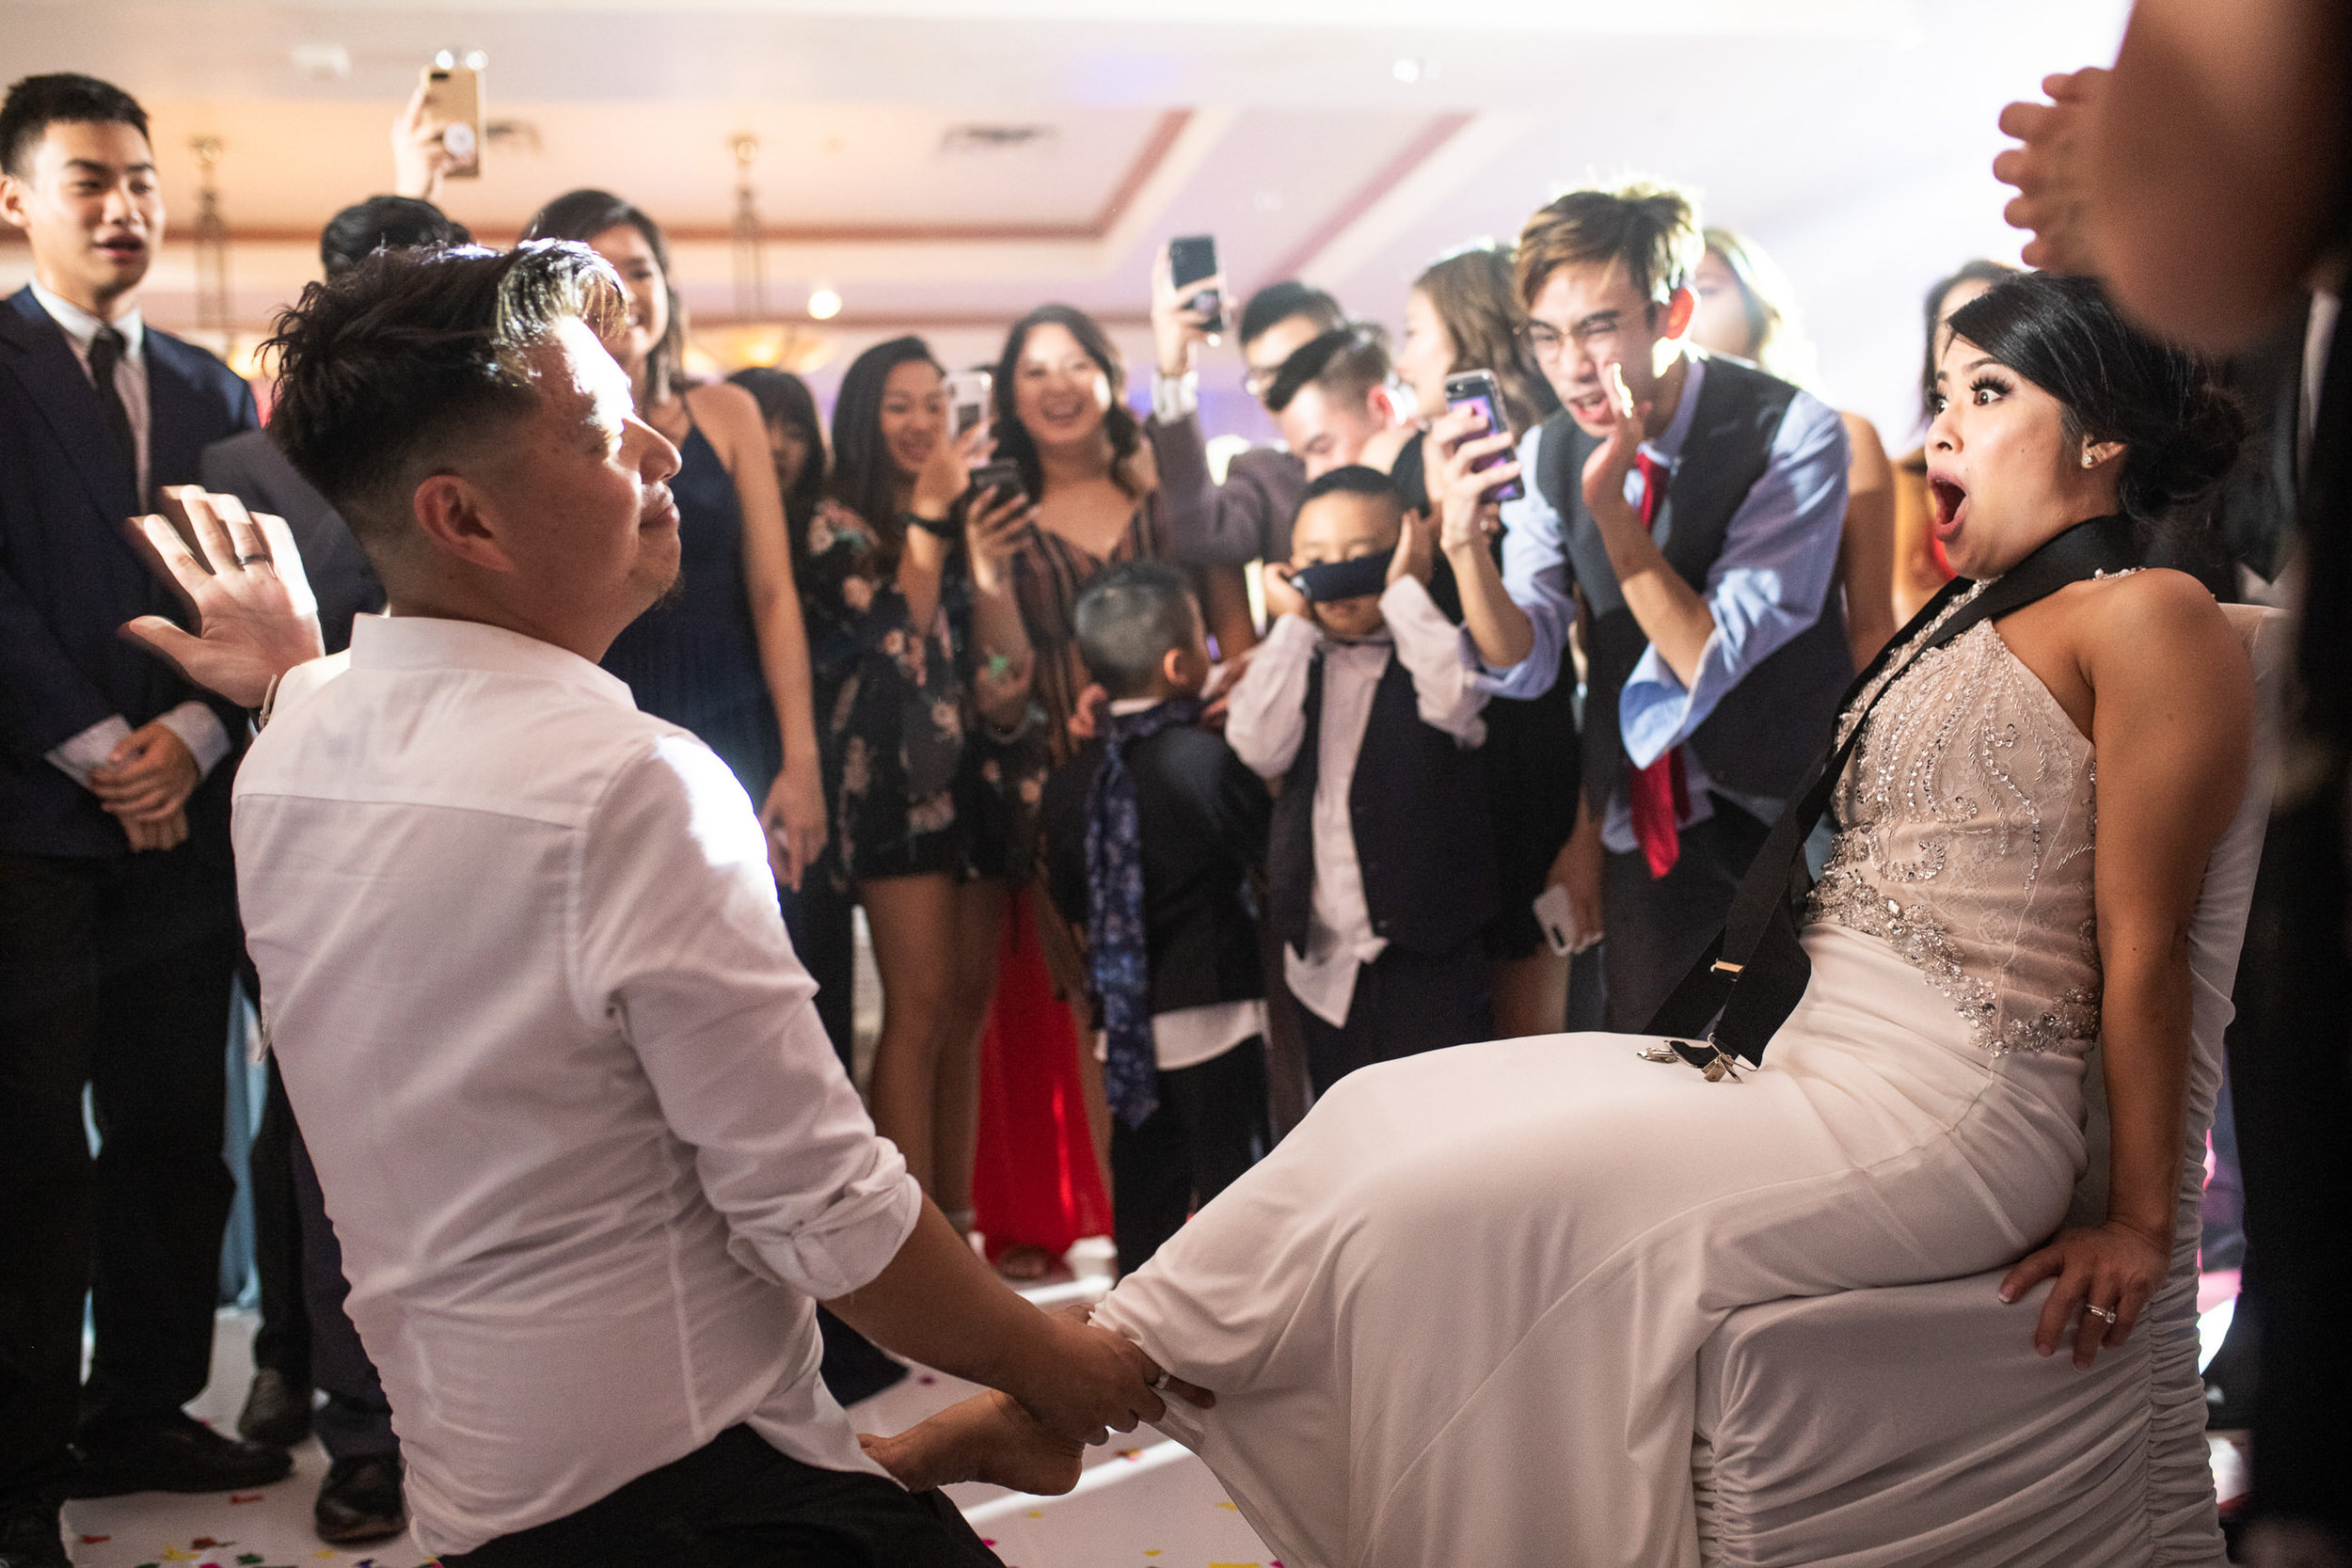 Dream_Wedding_Thanh_Thanh-3610.jpg